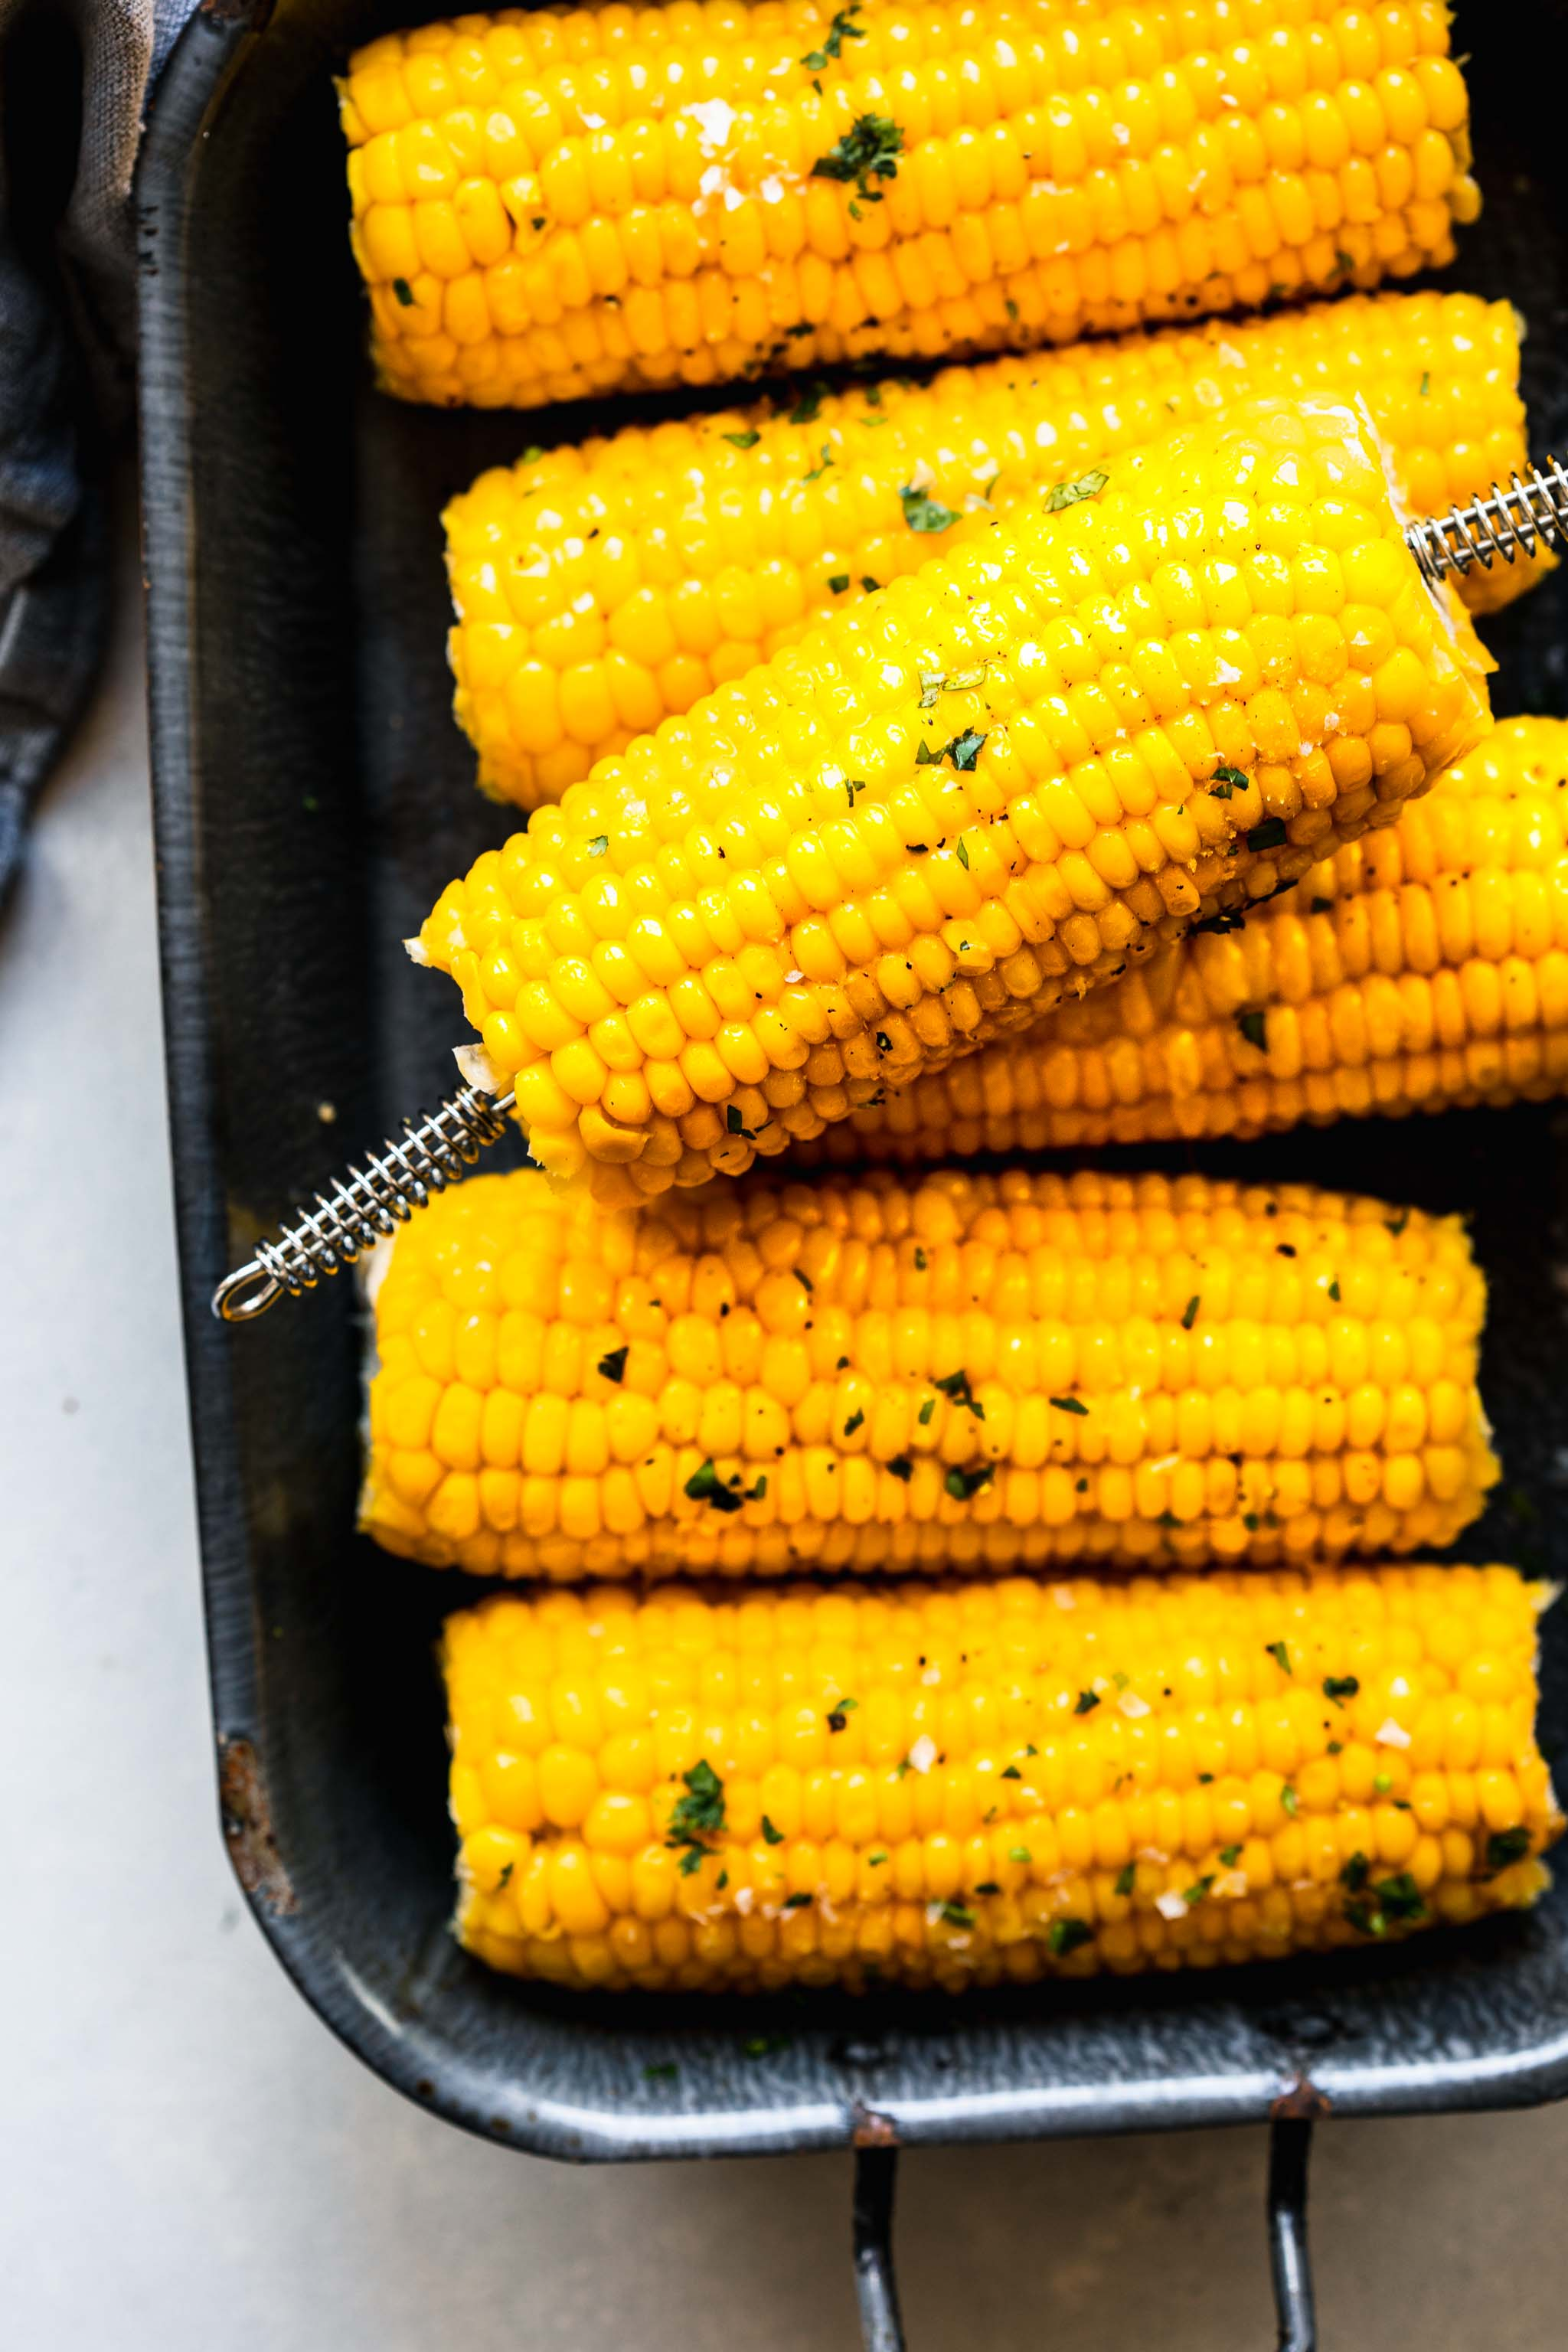 Cooked ears of corn on the cob in grey serving dish.